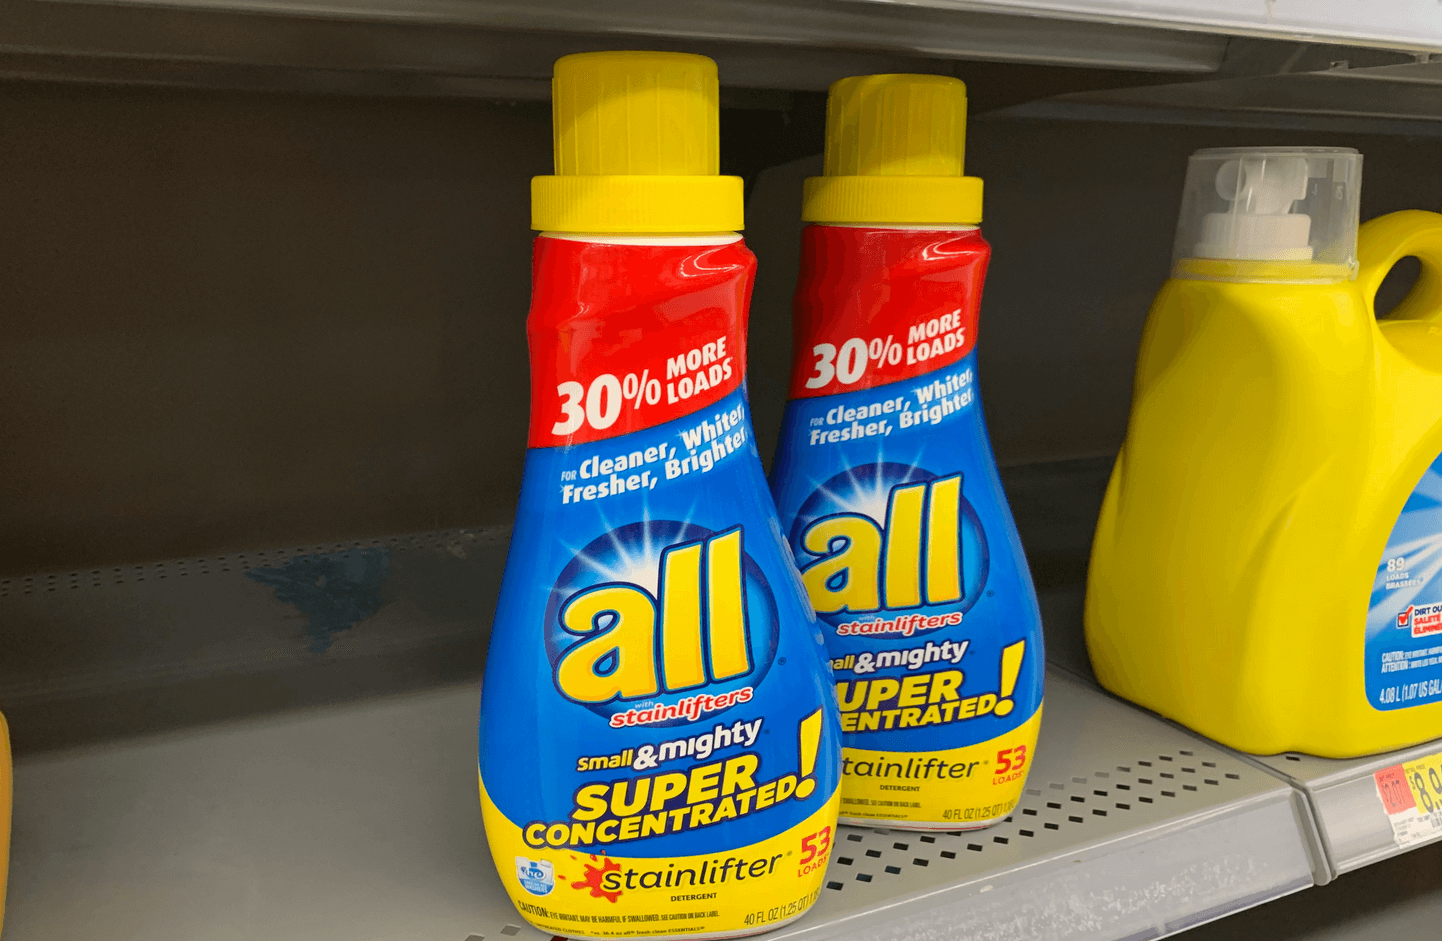 all Laundry Detergent Coupons March 2019